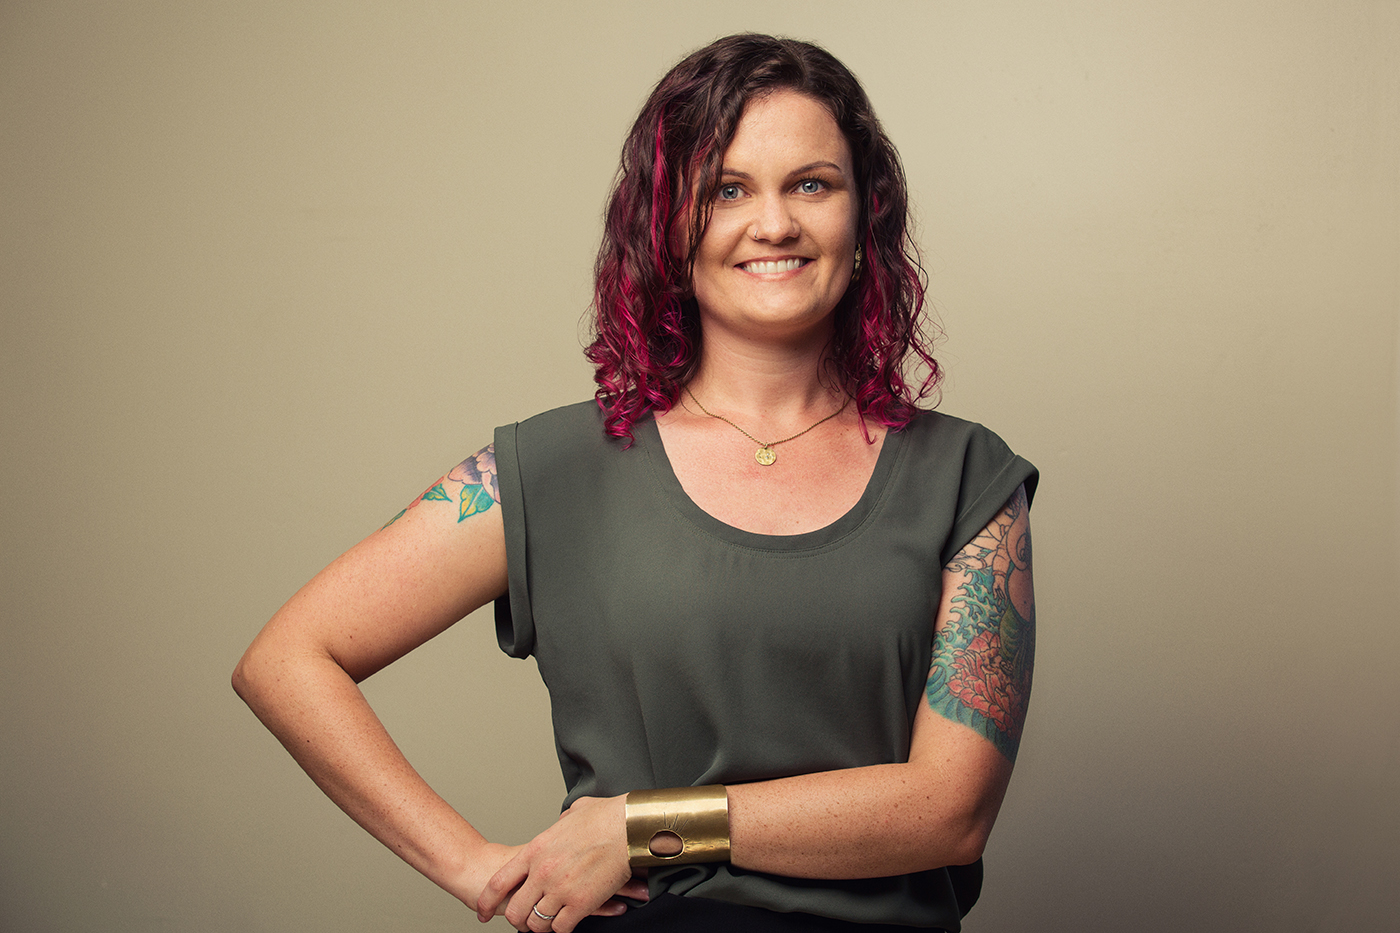 Oakland Professional modern portrait photography, Massage therapist, woman with tattoos.